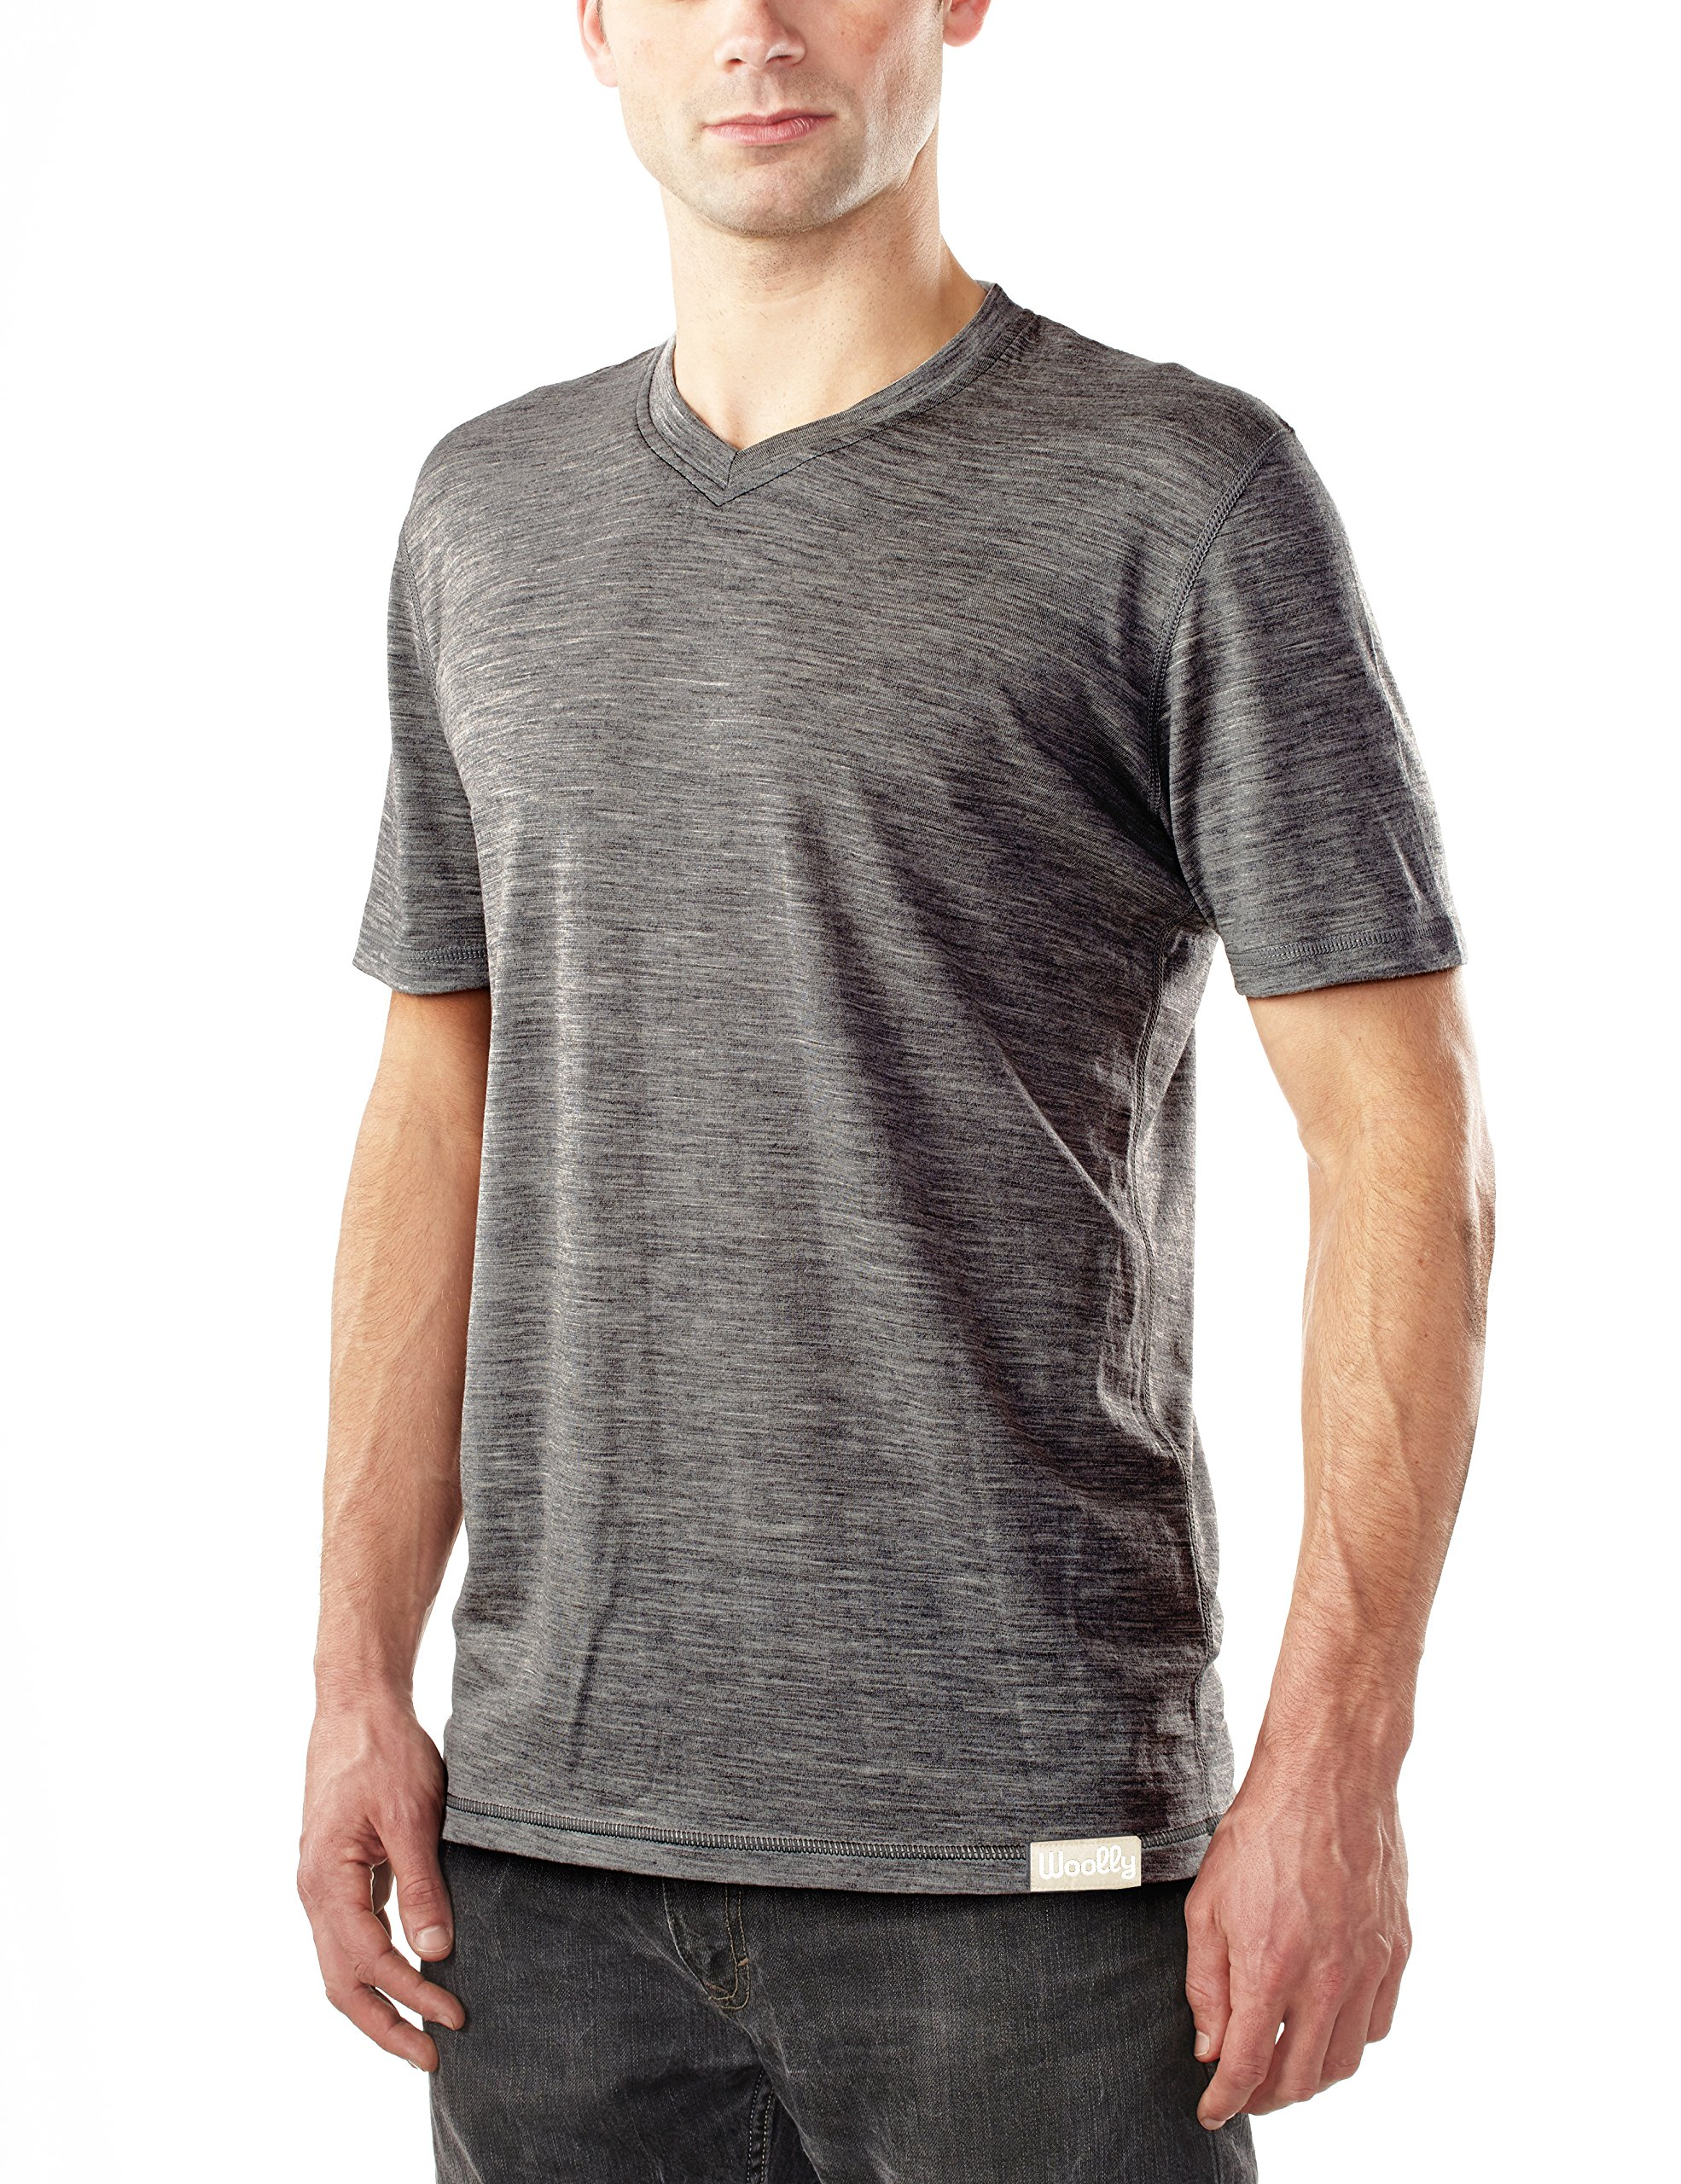 Woolly Clothing Co Men's Merino Wool V-Neck Hiking and Travel T-Shirt,Charcoal,X-Large